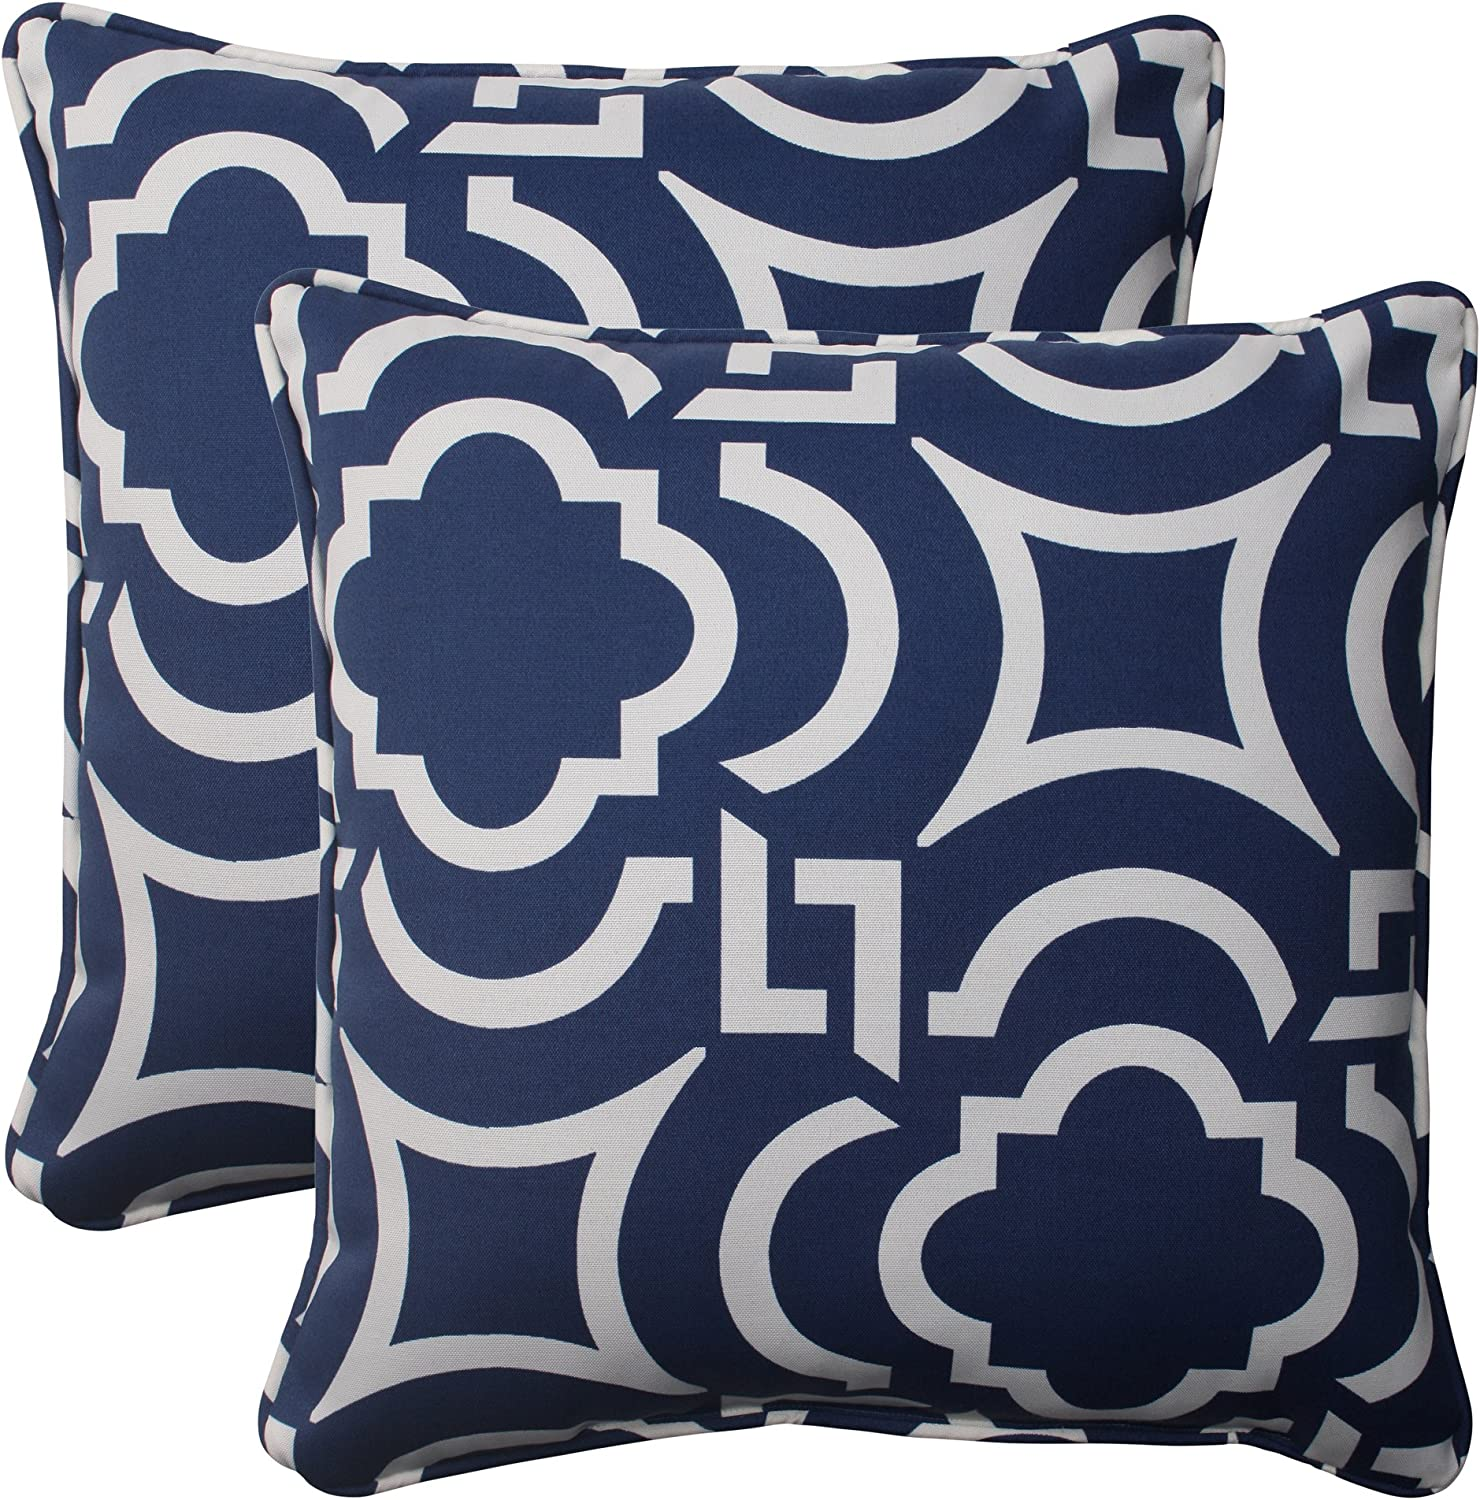 Pillow Perfect Outdoor Carmody Corded Throw Pillow, 18.5-Inch, Navy, Set of 2